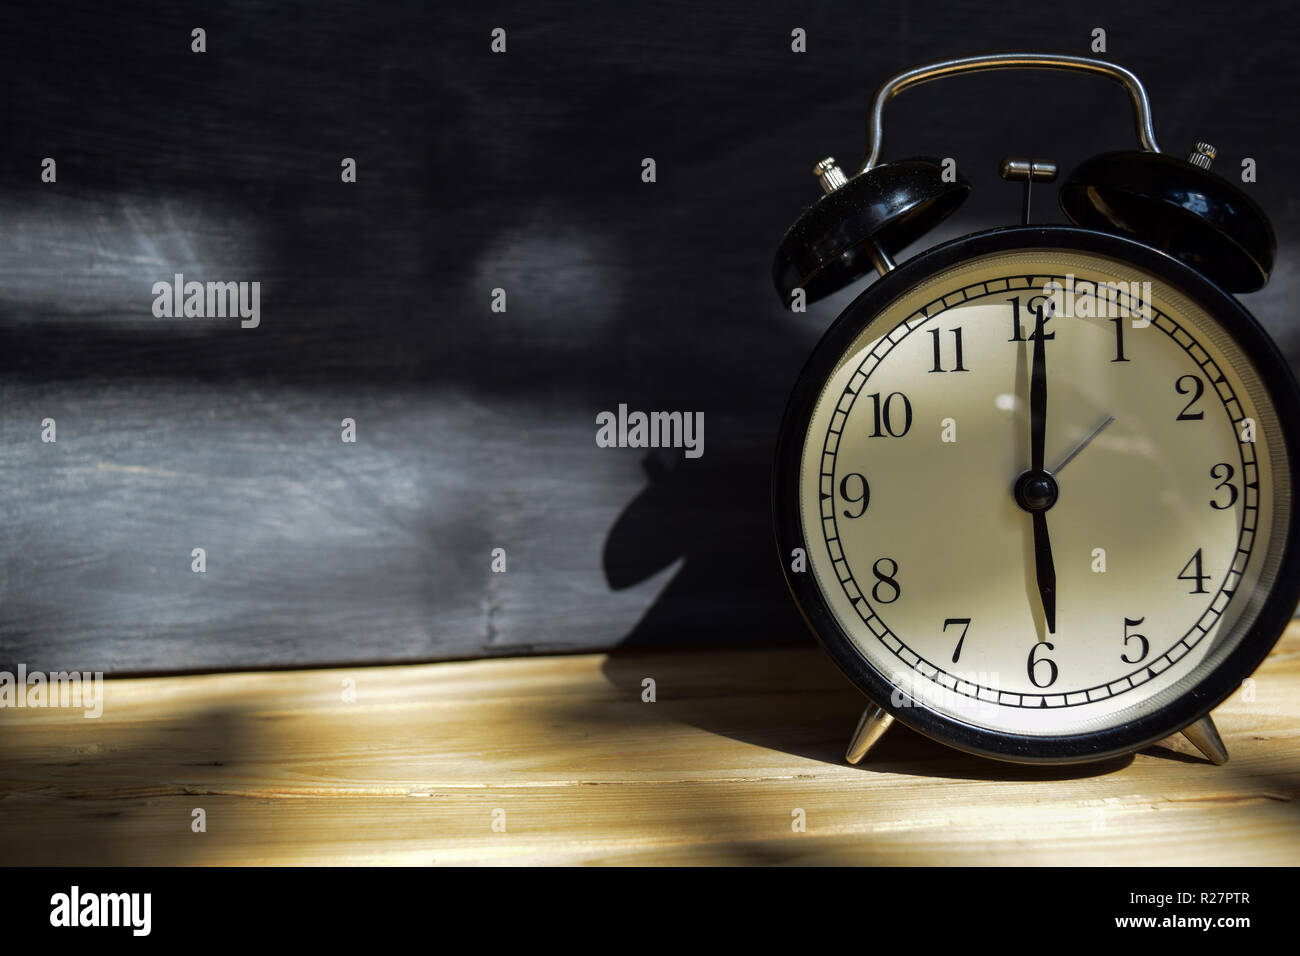 6 am/pm Back to school concept. Alarm clock on wooden with blackboard on background - Stock Image